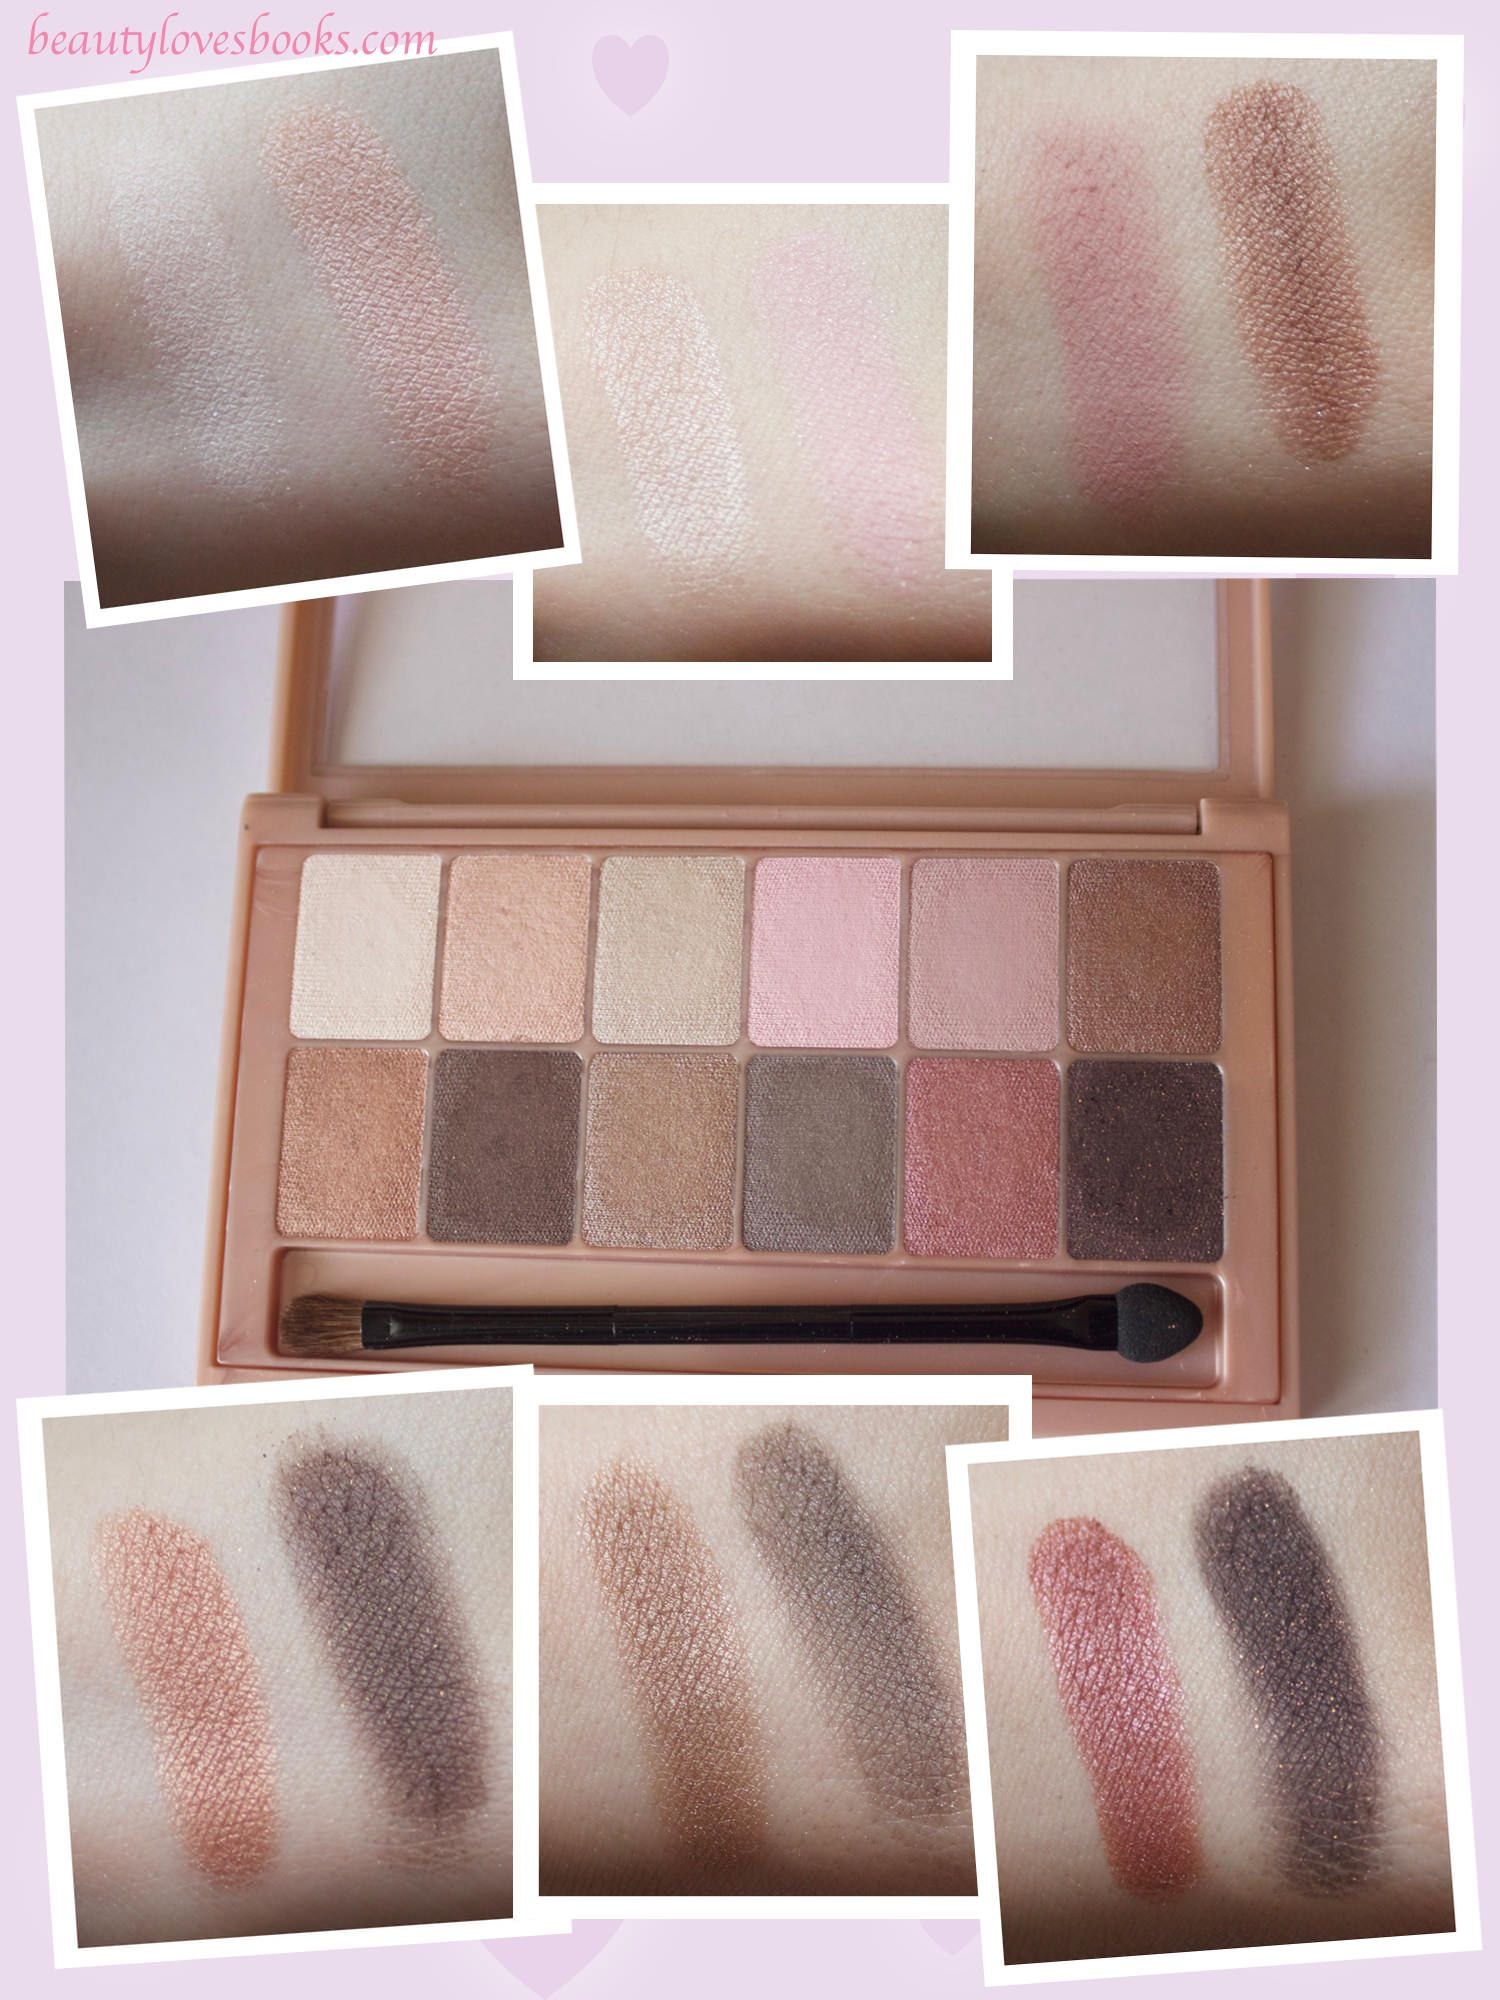 Maybelline The Blushed Nudes Palette - Review And Swatches -3462